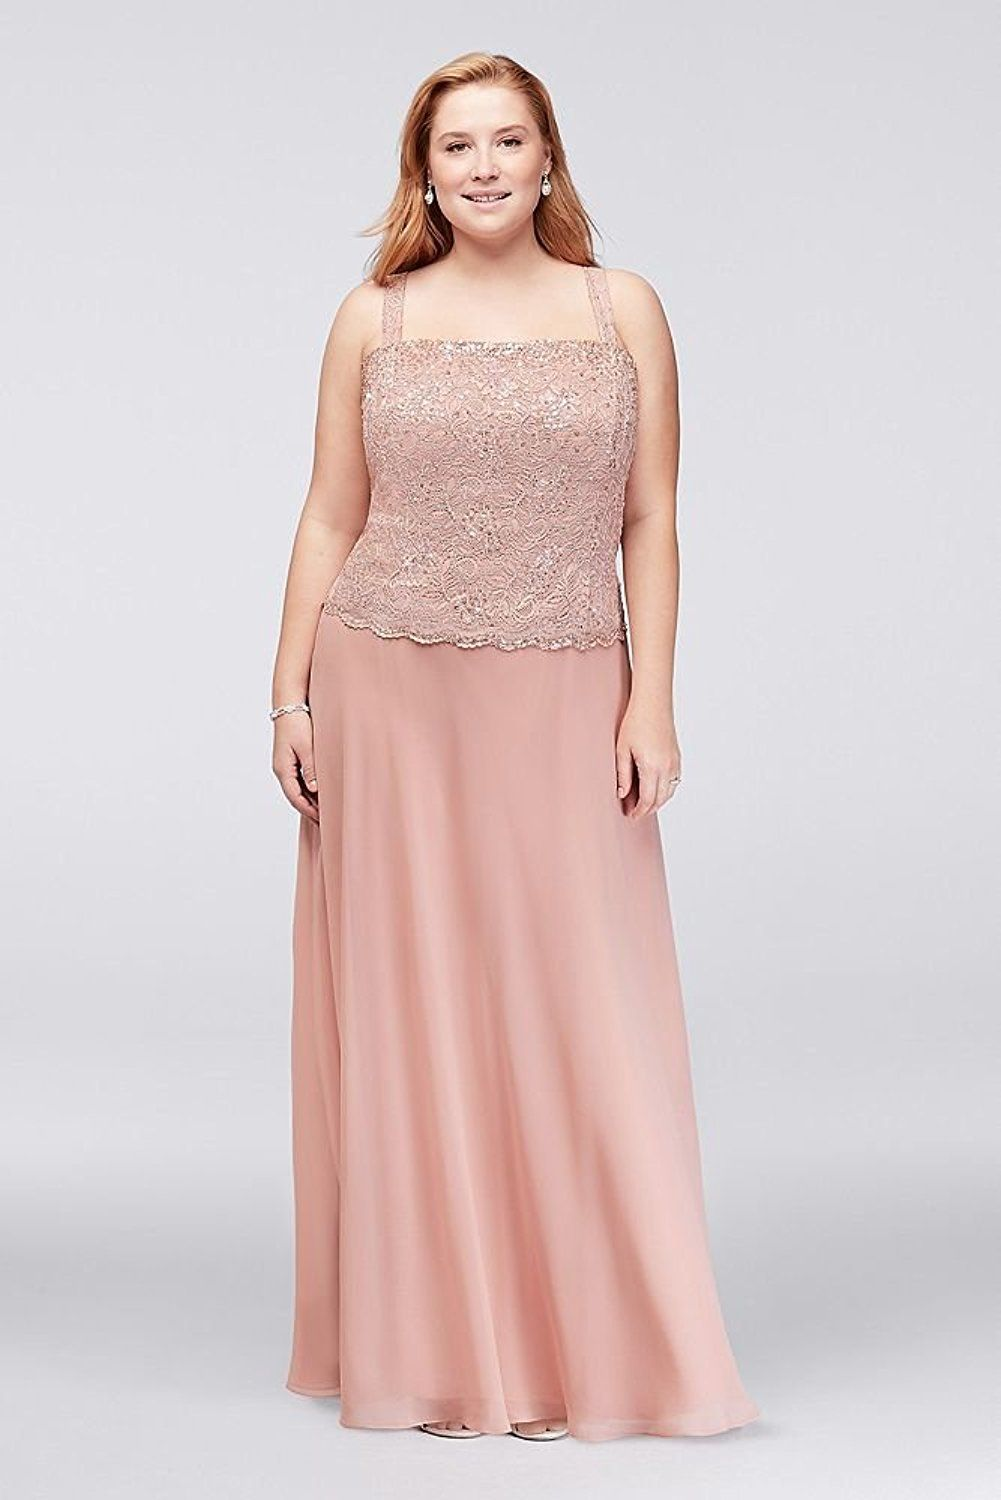 Plus Size Wedding Guest Dresses - Plus Size Two Piece Mother of ...